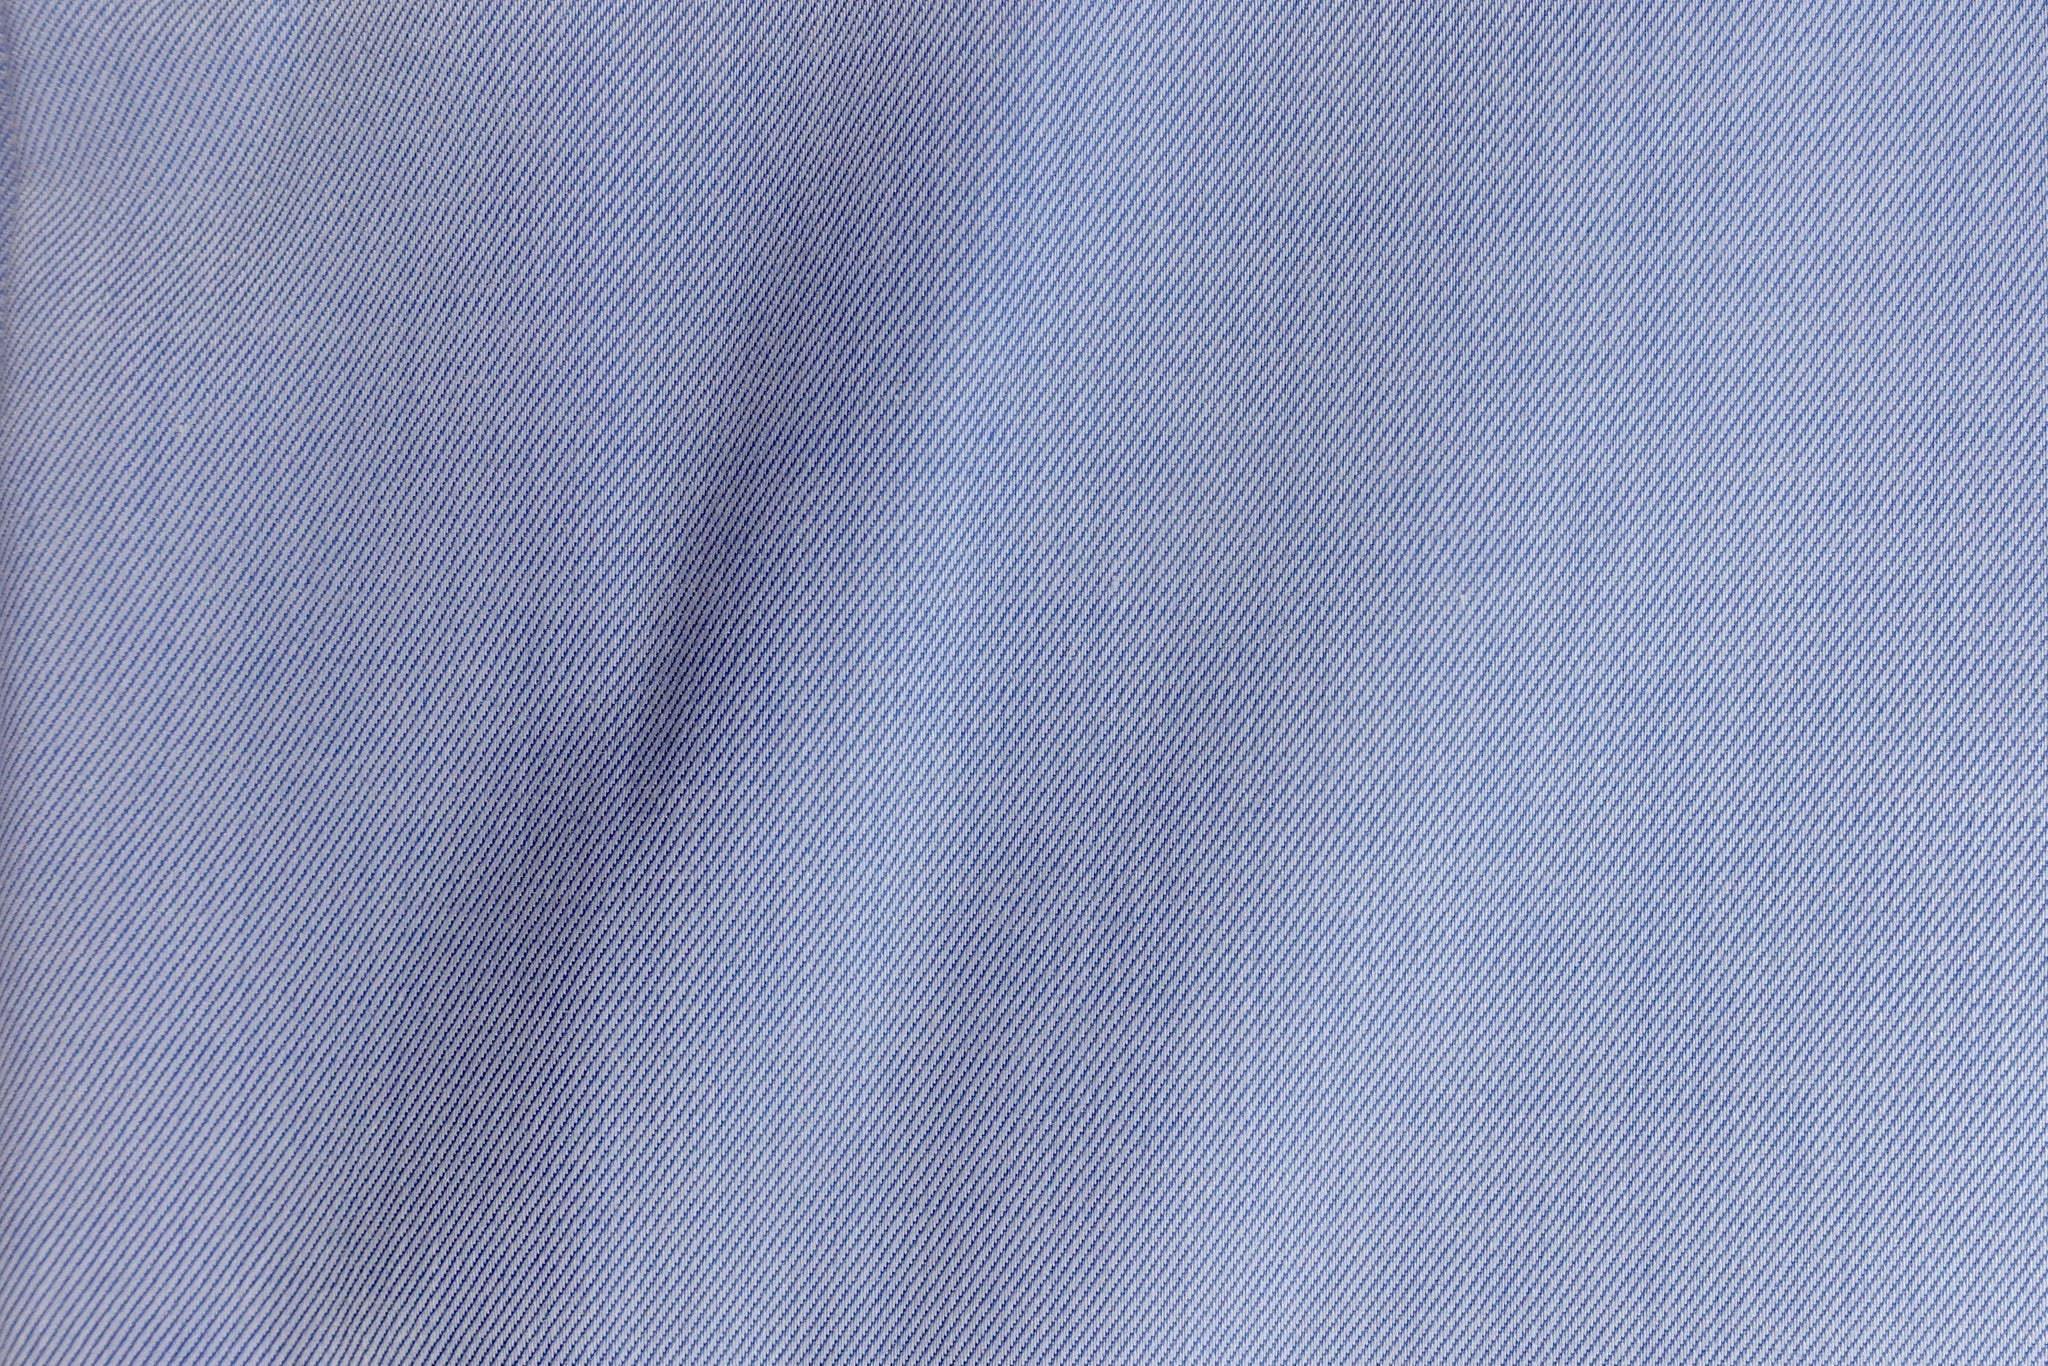 Luxury Light Blue Twill Shirt